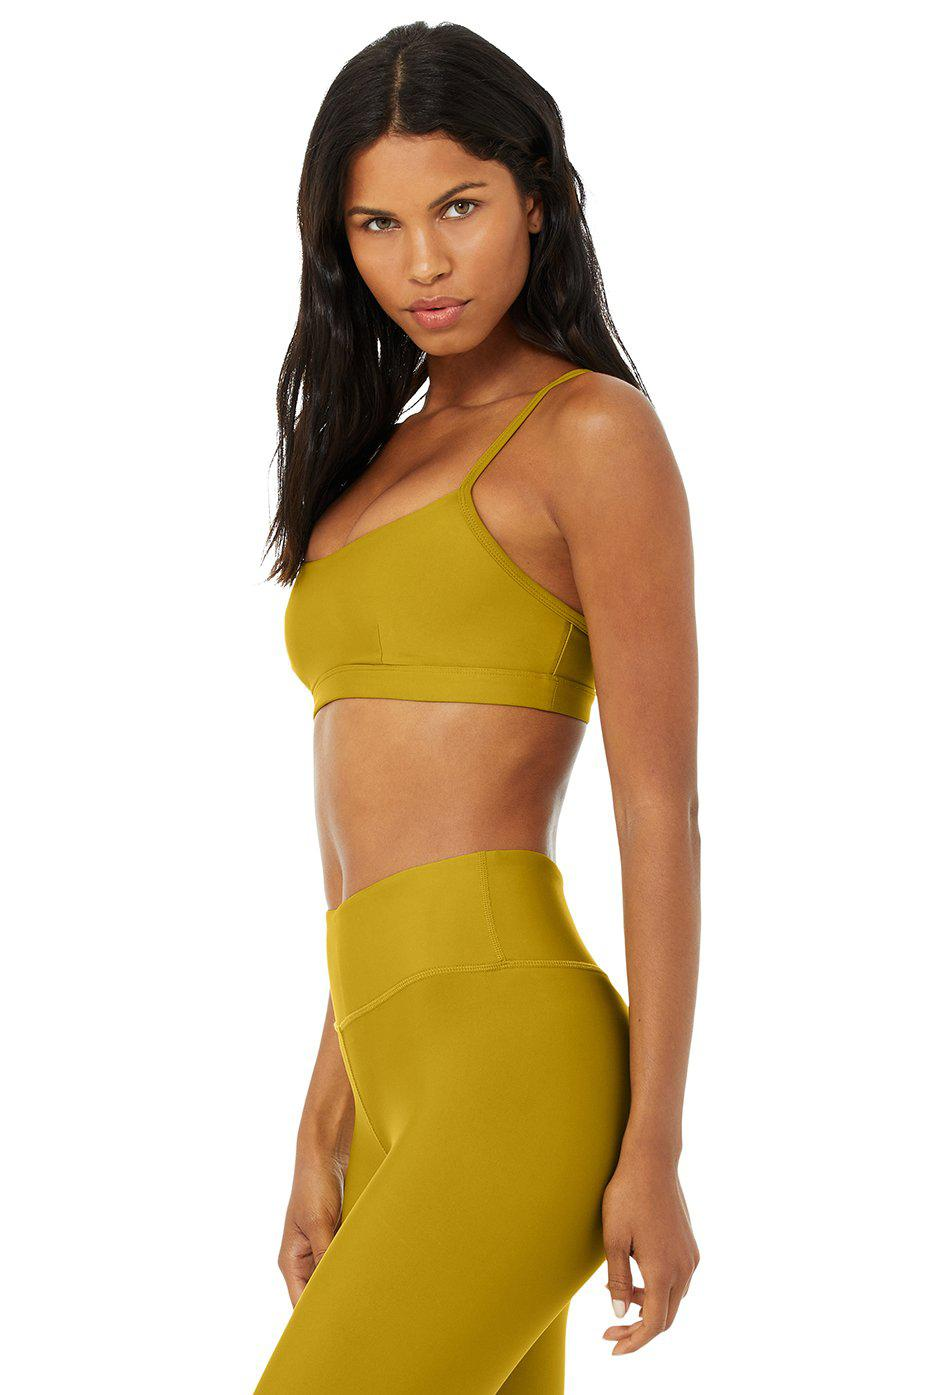 Airlift Intrigue Bra - Chartreuse 1